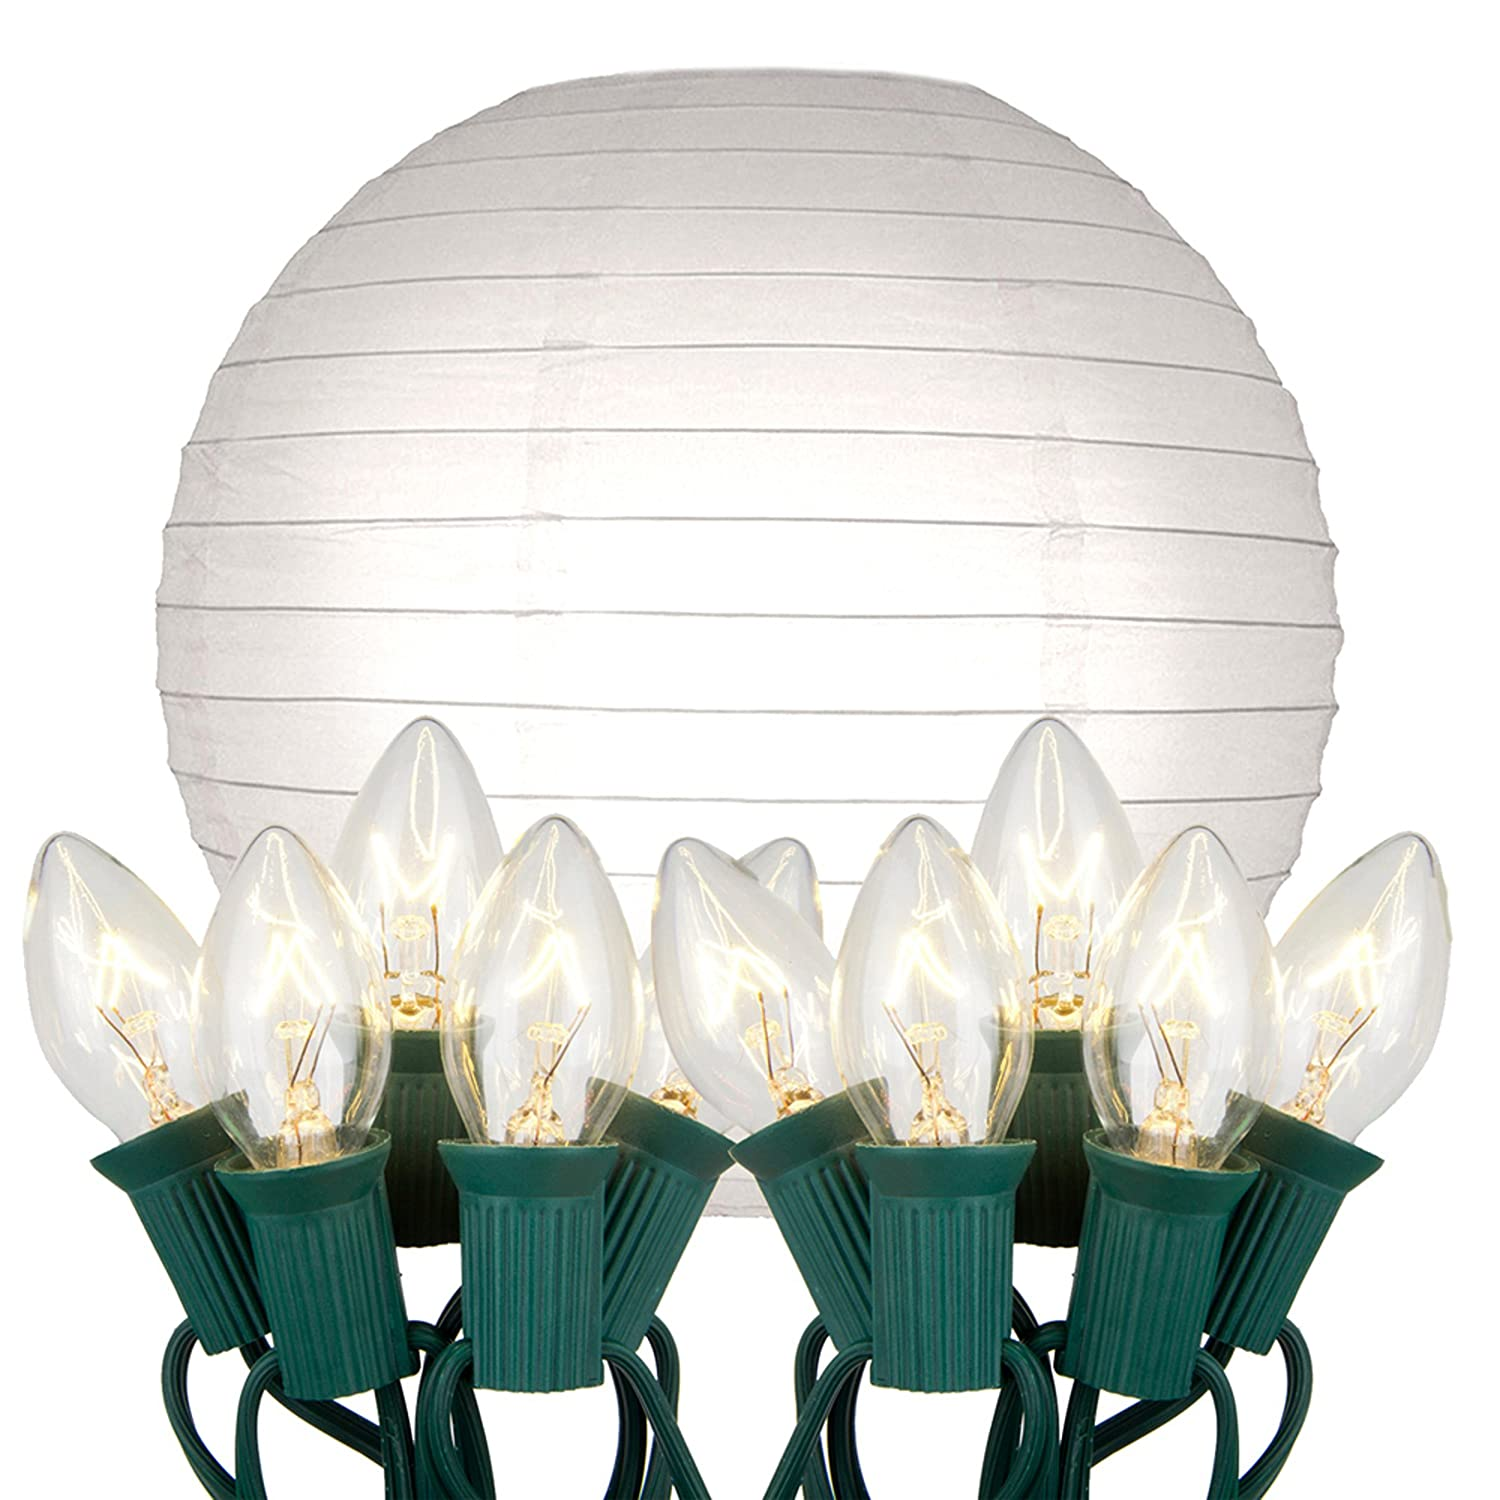 Lantern string lights - Amazon Com Lumabase 24010 10 Count Electric String Lights With Paper Lanterns 10 White Patio Lawn Garden